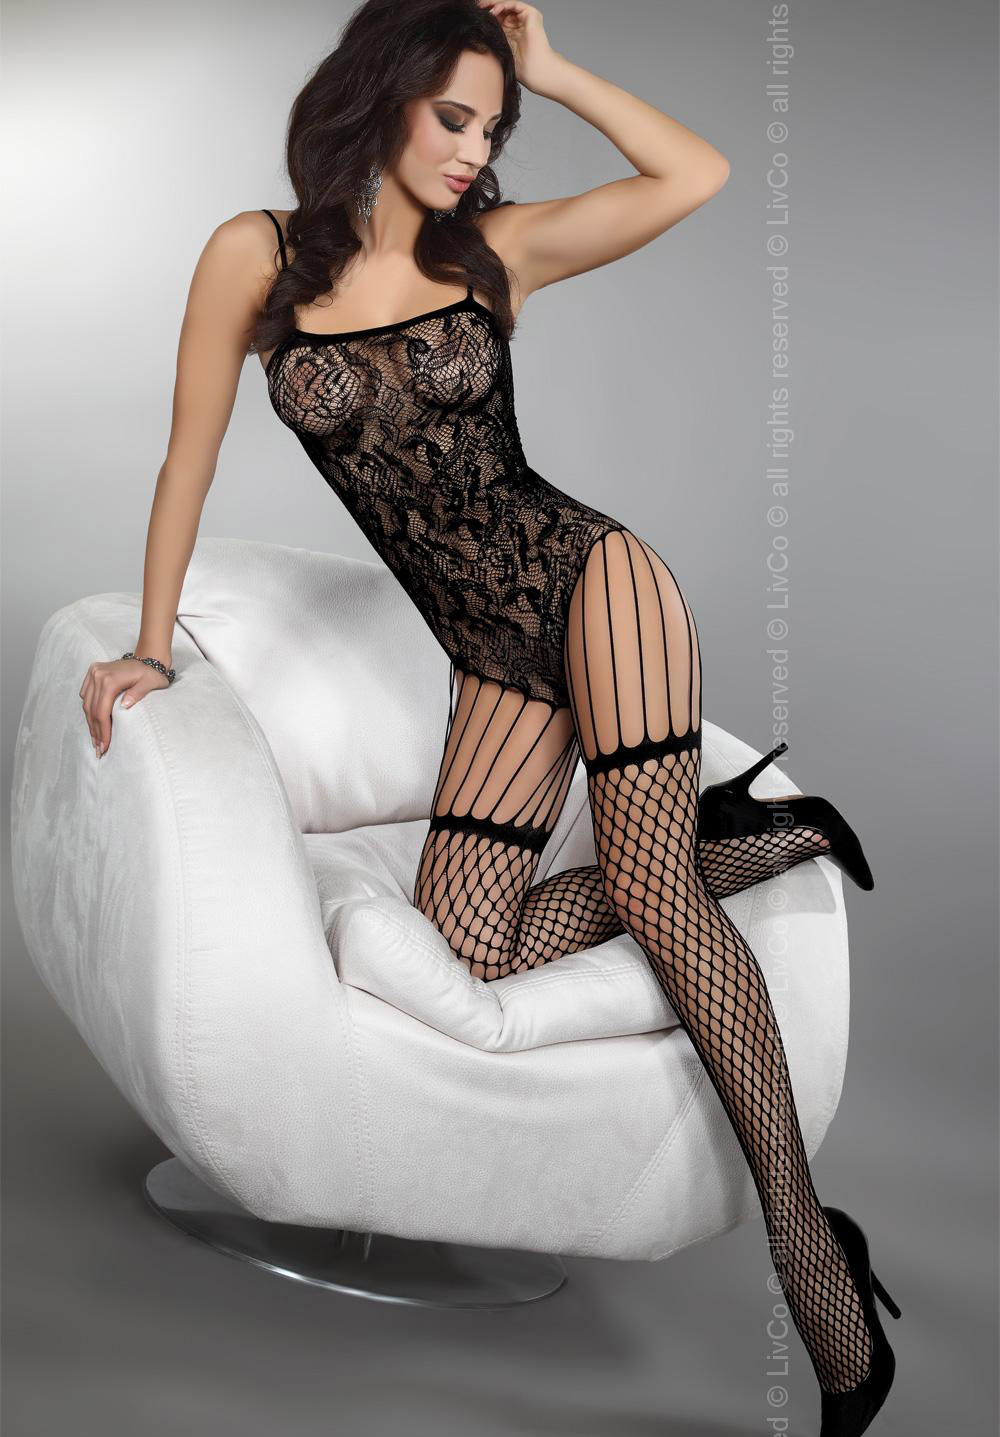 Livco Corsetti Fashion - Bodystocking - Saffron LC 17208